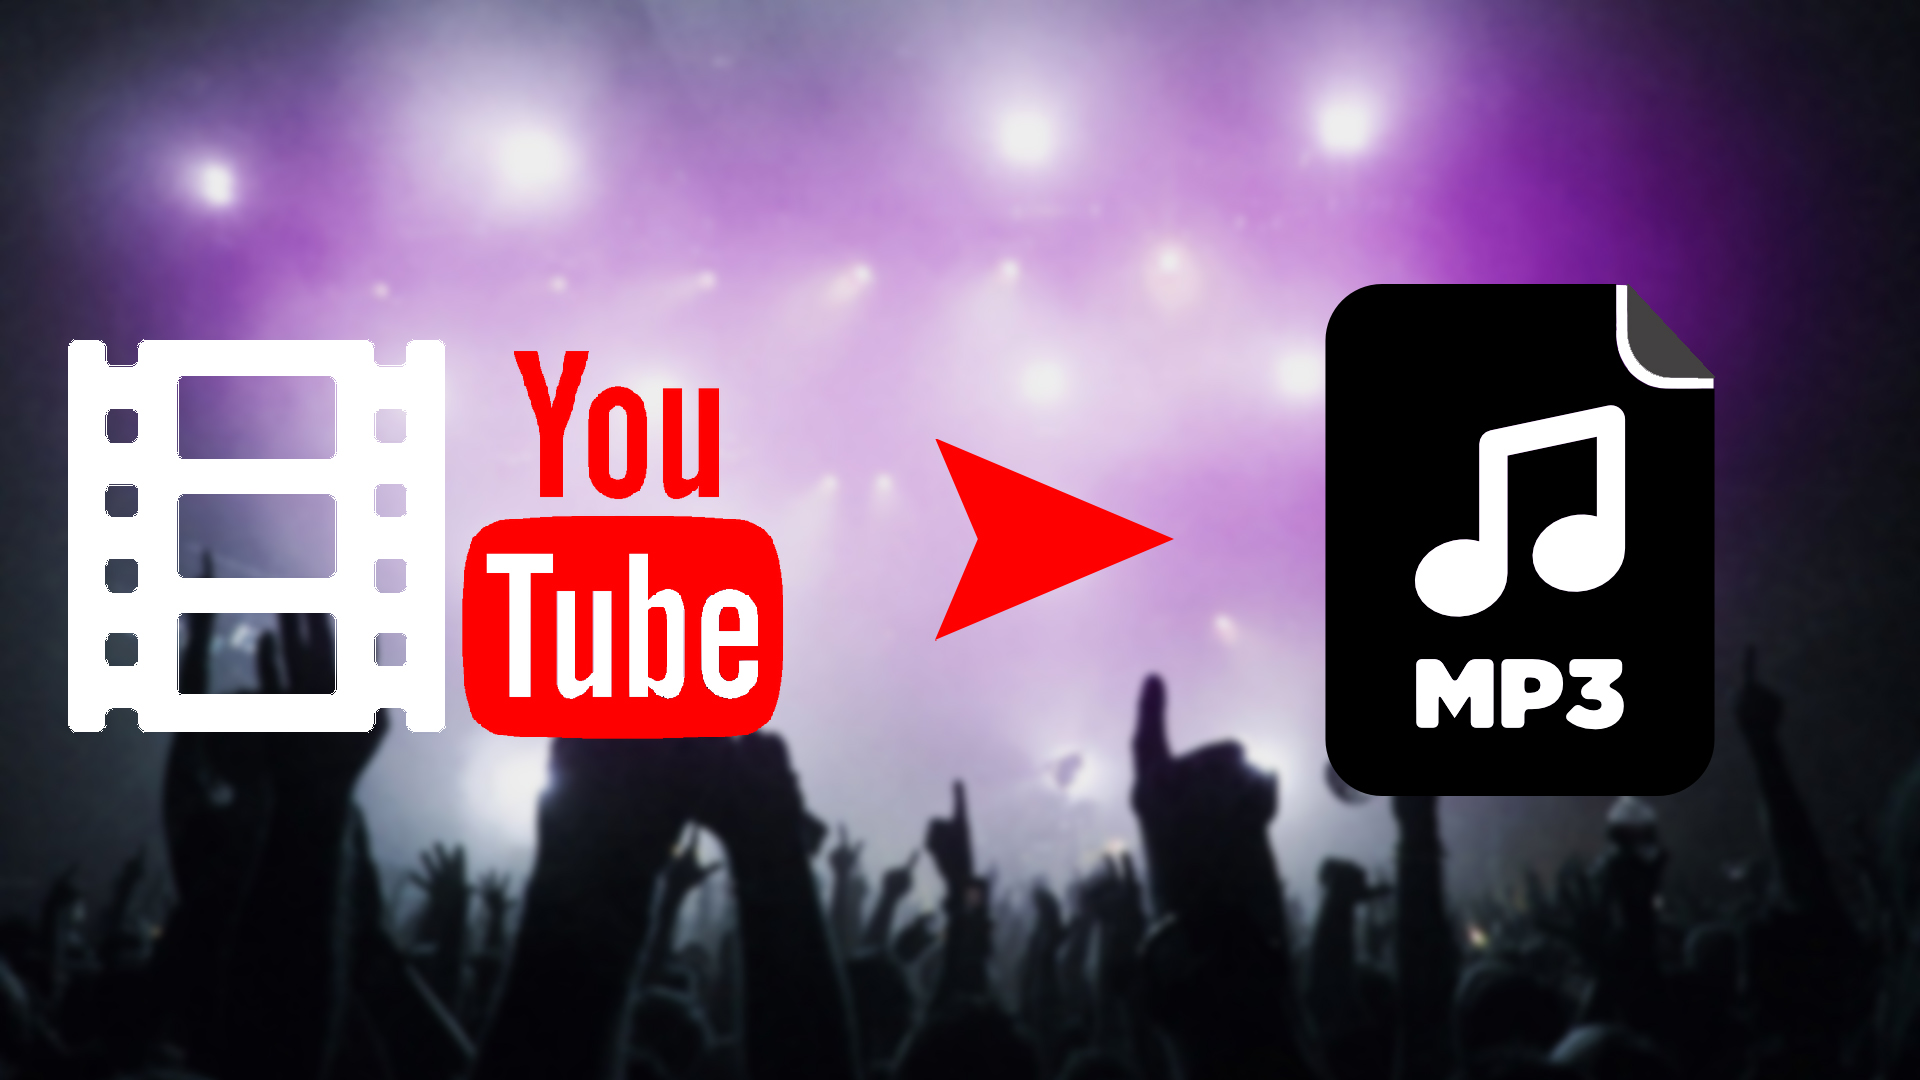 Download free YouTube videos in Mp3 format | blogger.com